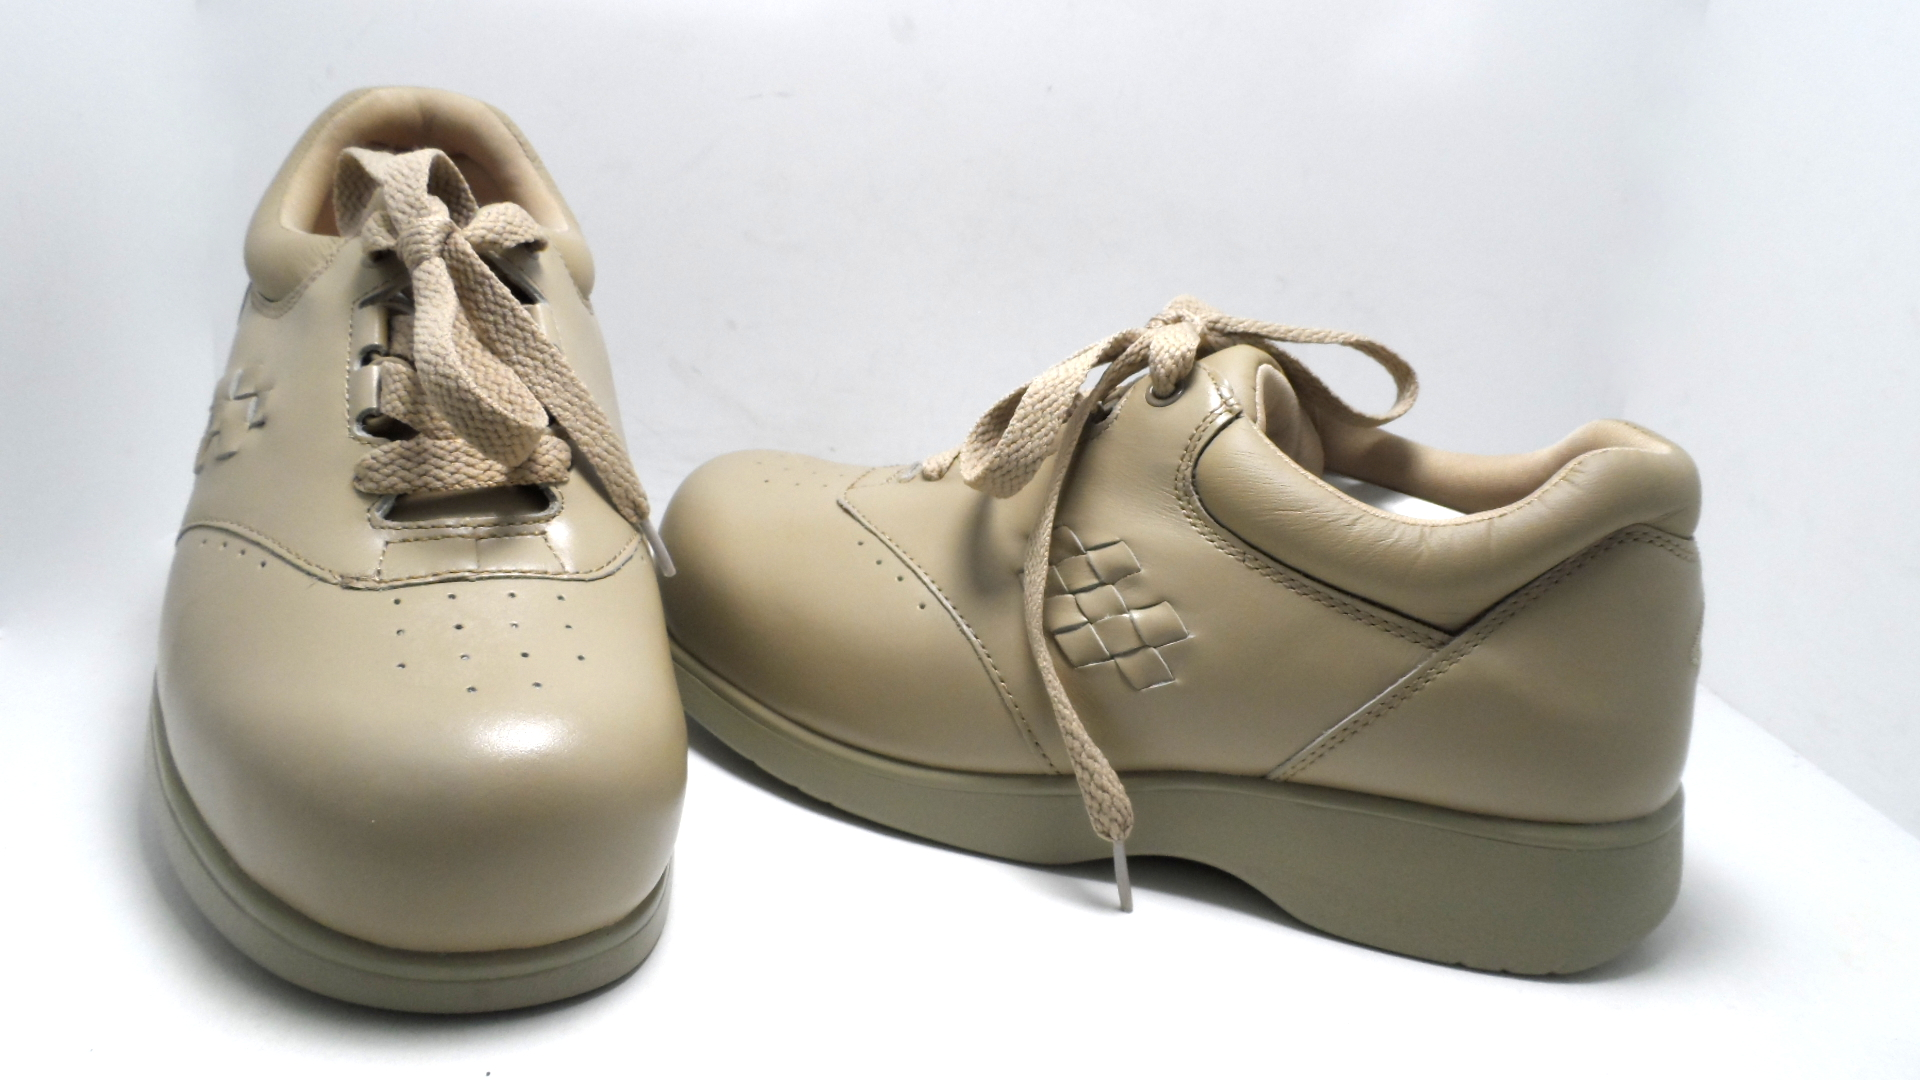 instride women 39 s sanibel lace up comfort shoes taupe size 7 extra wide new ebay. Black Bedroom Furniture Sets. Home Design Ideas